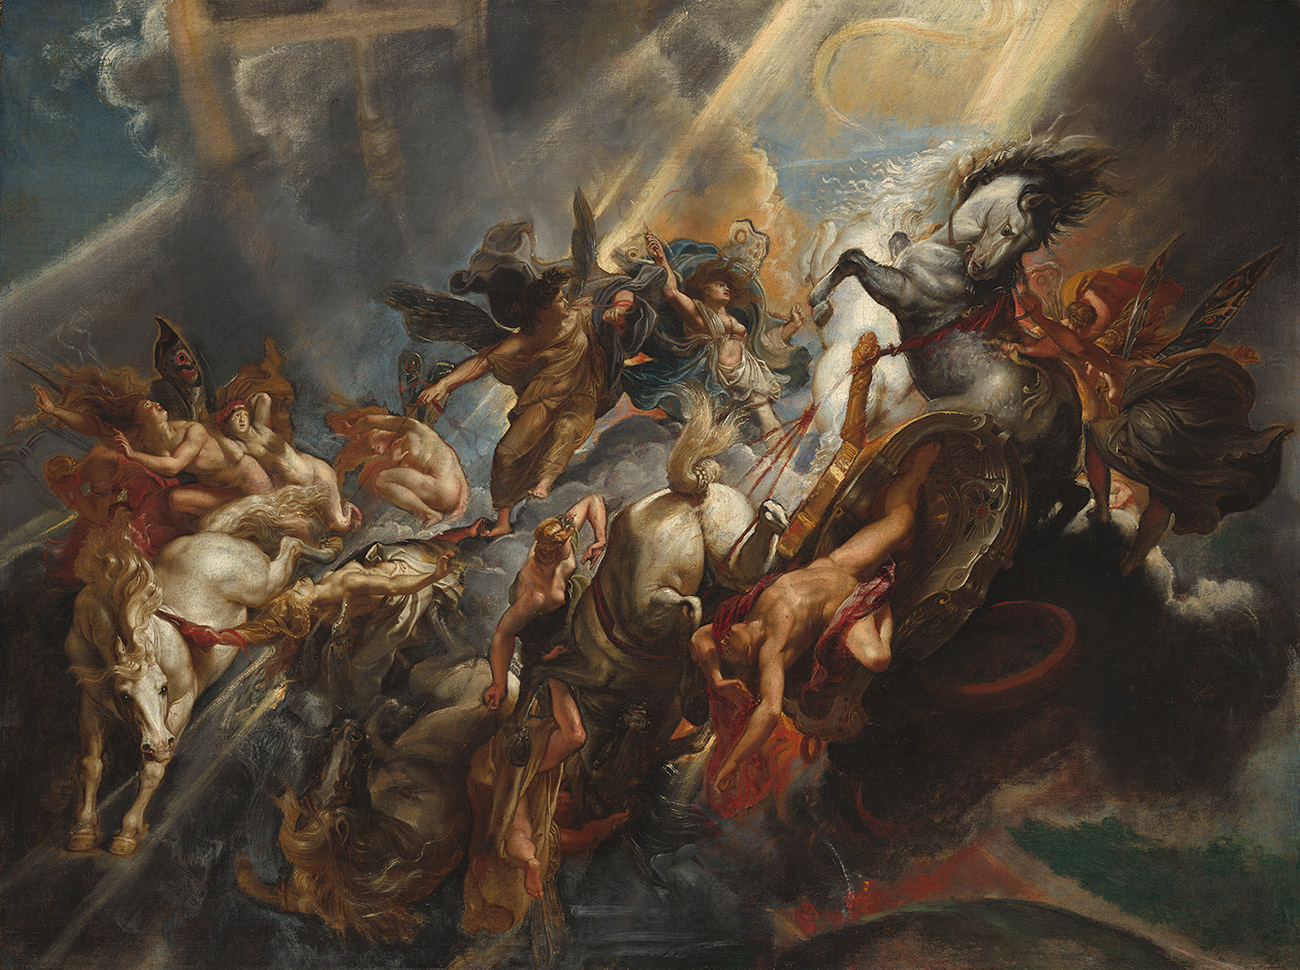 The Fall of Phaeton by Peter Paul Rubens, 1605, now in the National Gallery of Art, Washington DC.